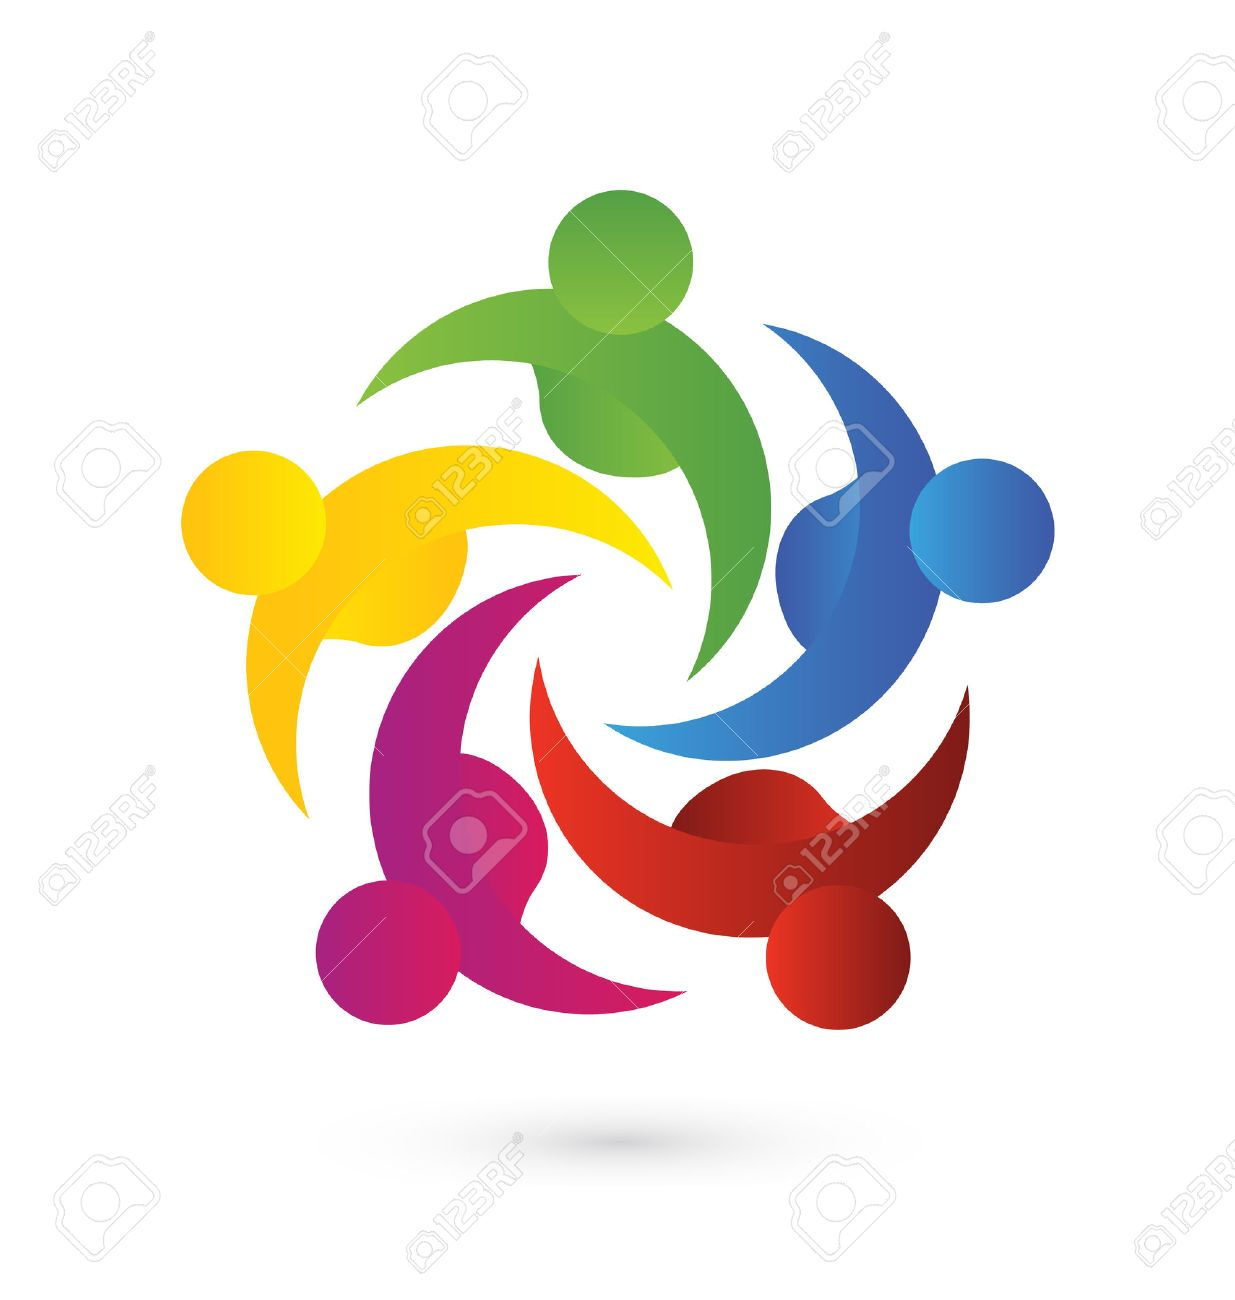 Concept of business,employees,community, union, goals,solidarity , partners,children - vector graphic. This logo template also represents colorful kids playing together holding hands in circles, union of workers, employees meeting - 39169083